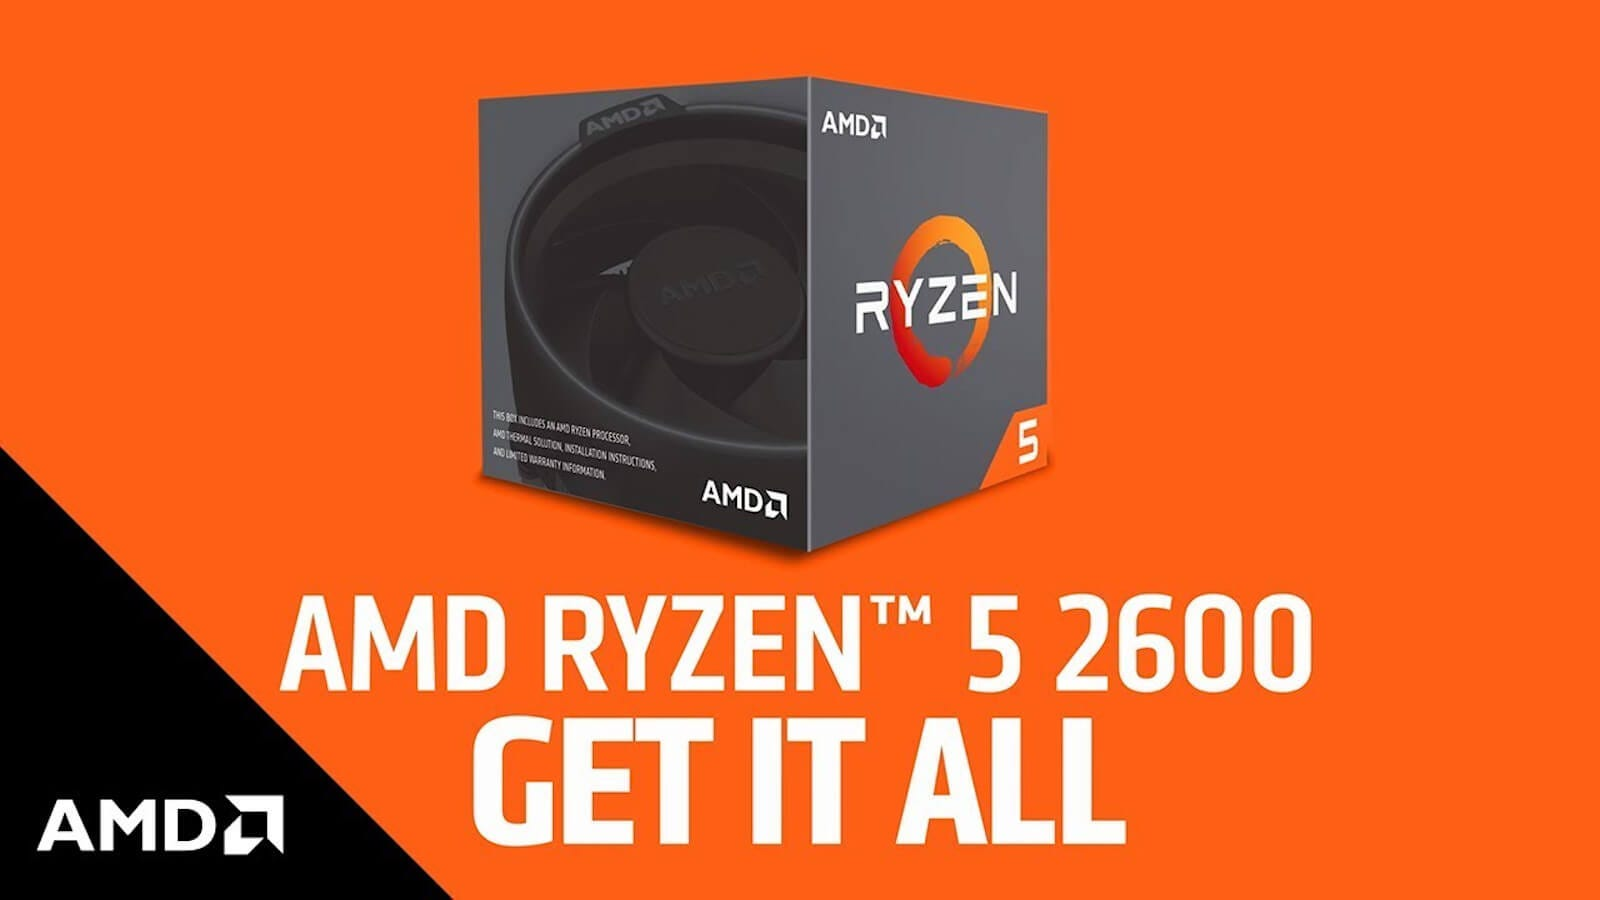 Budget Gamers The Ryzen 5 2600 Is Only 119 99 Right Now Review Geek